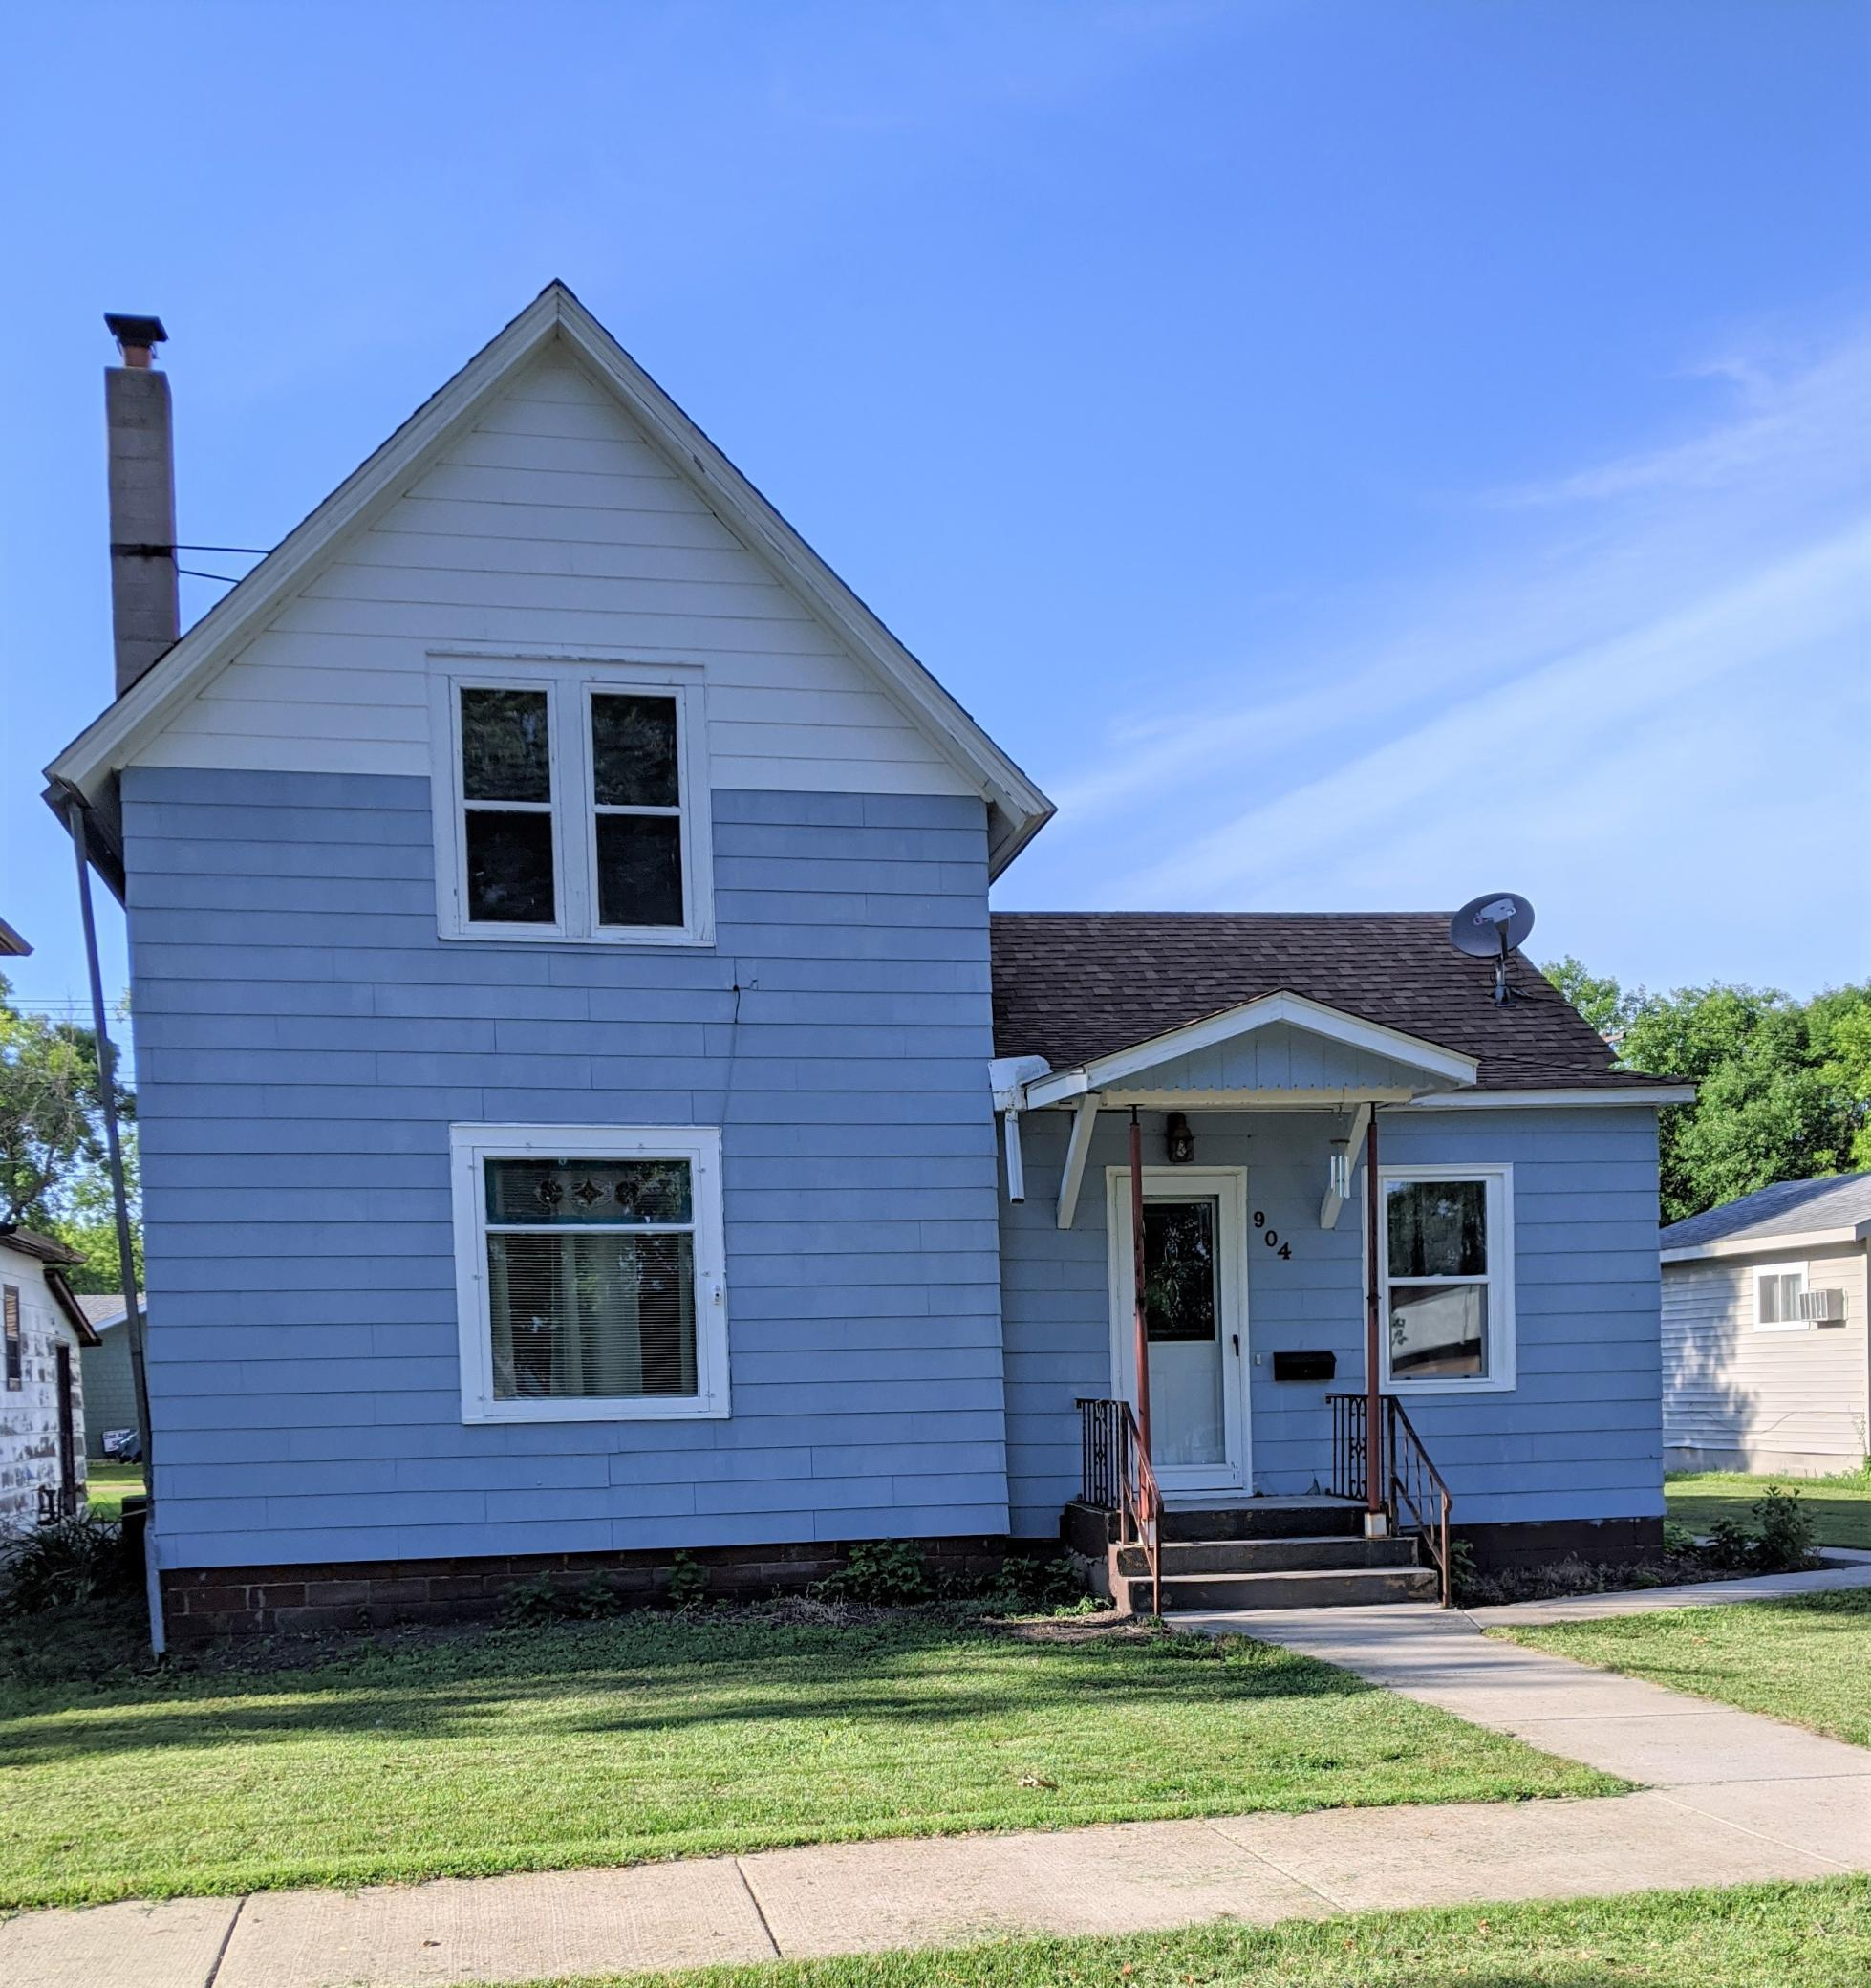 904 1st N Property Photo - Wheaton, MN real estate listing